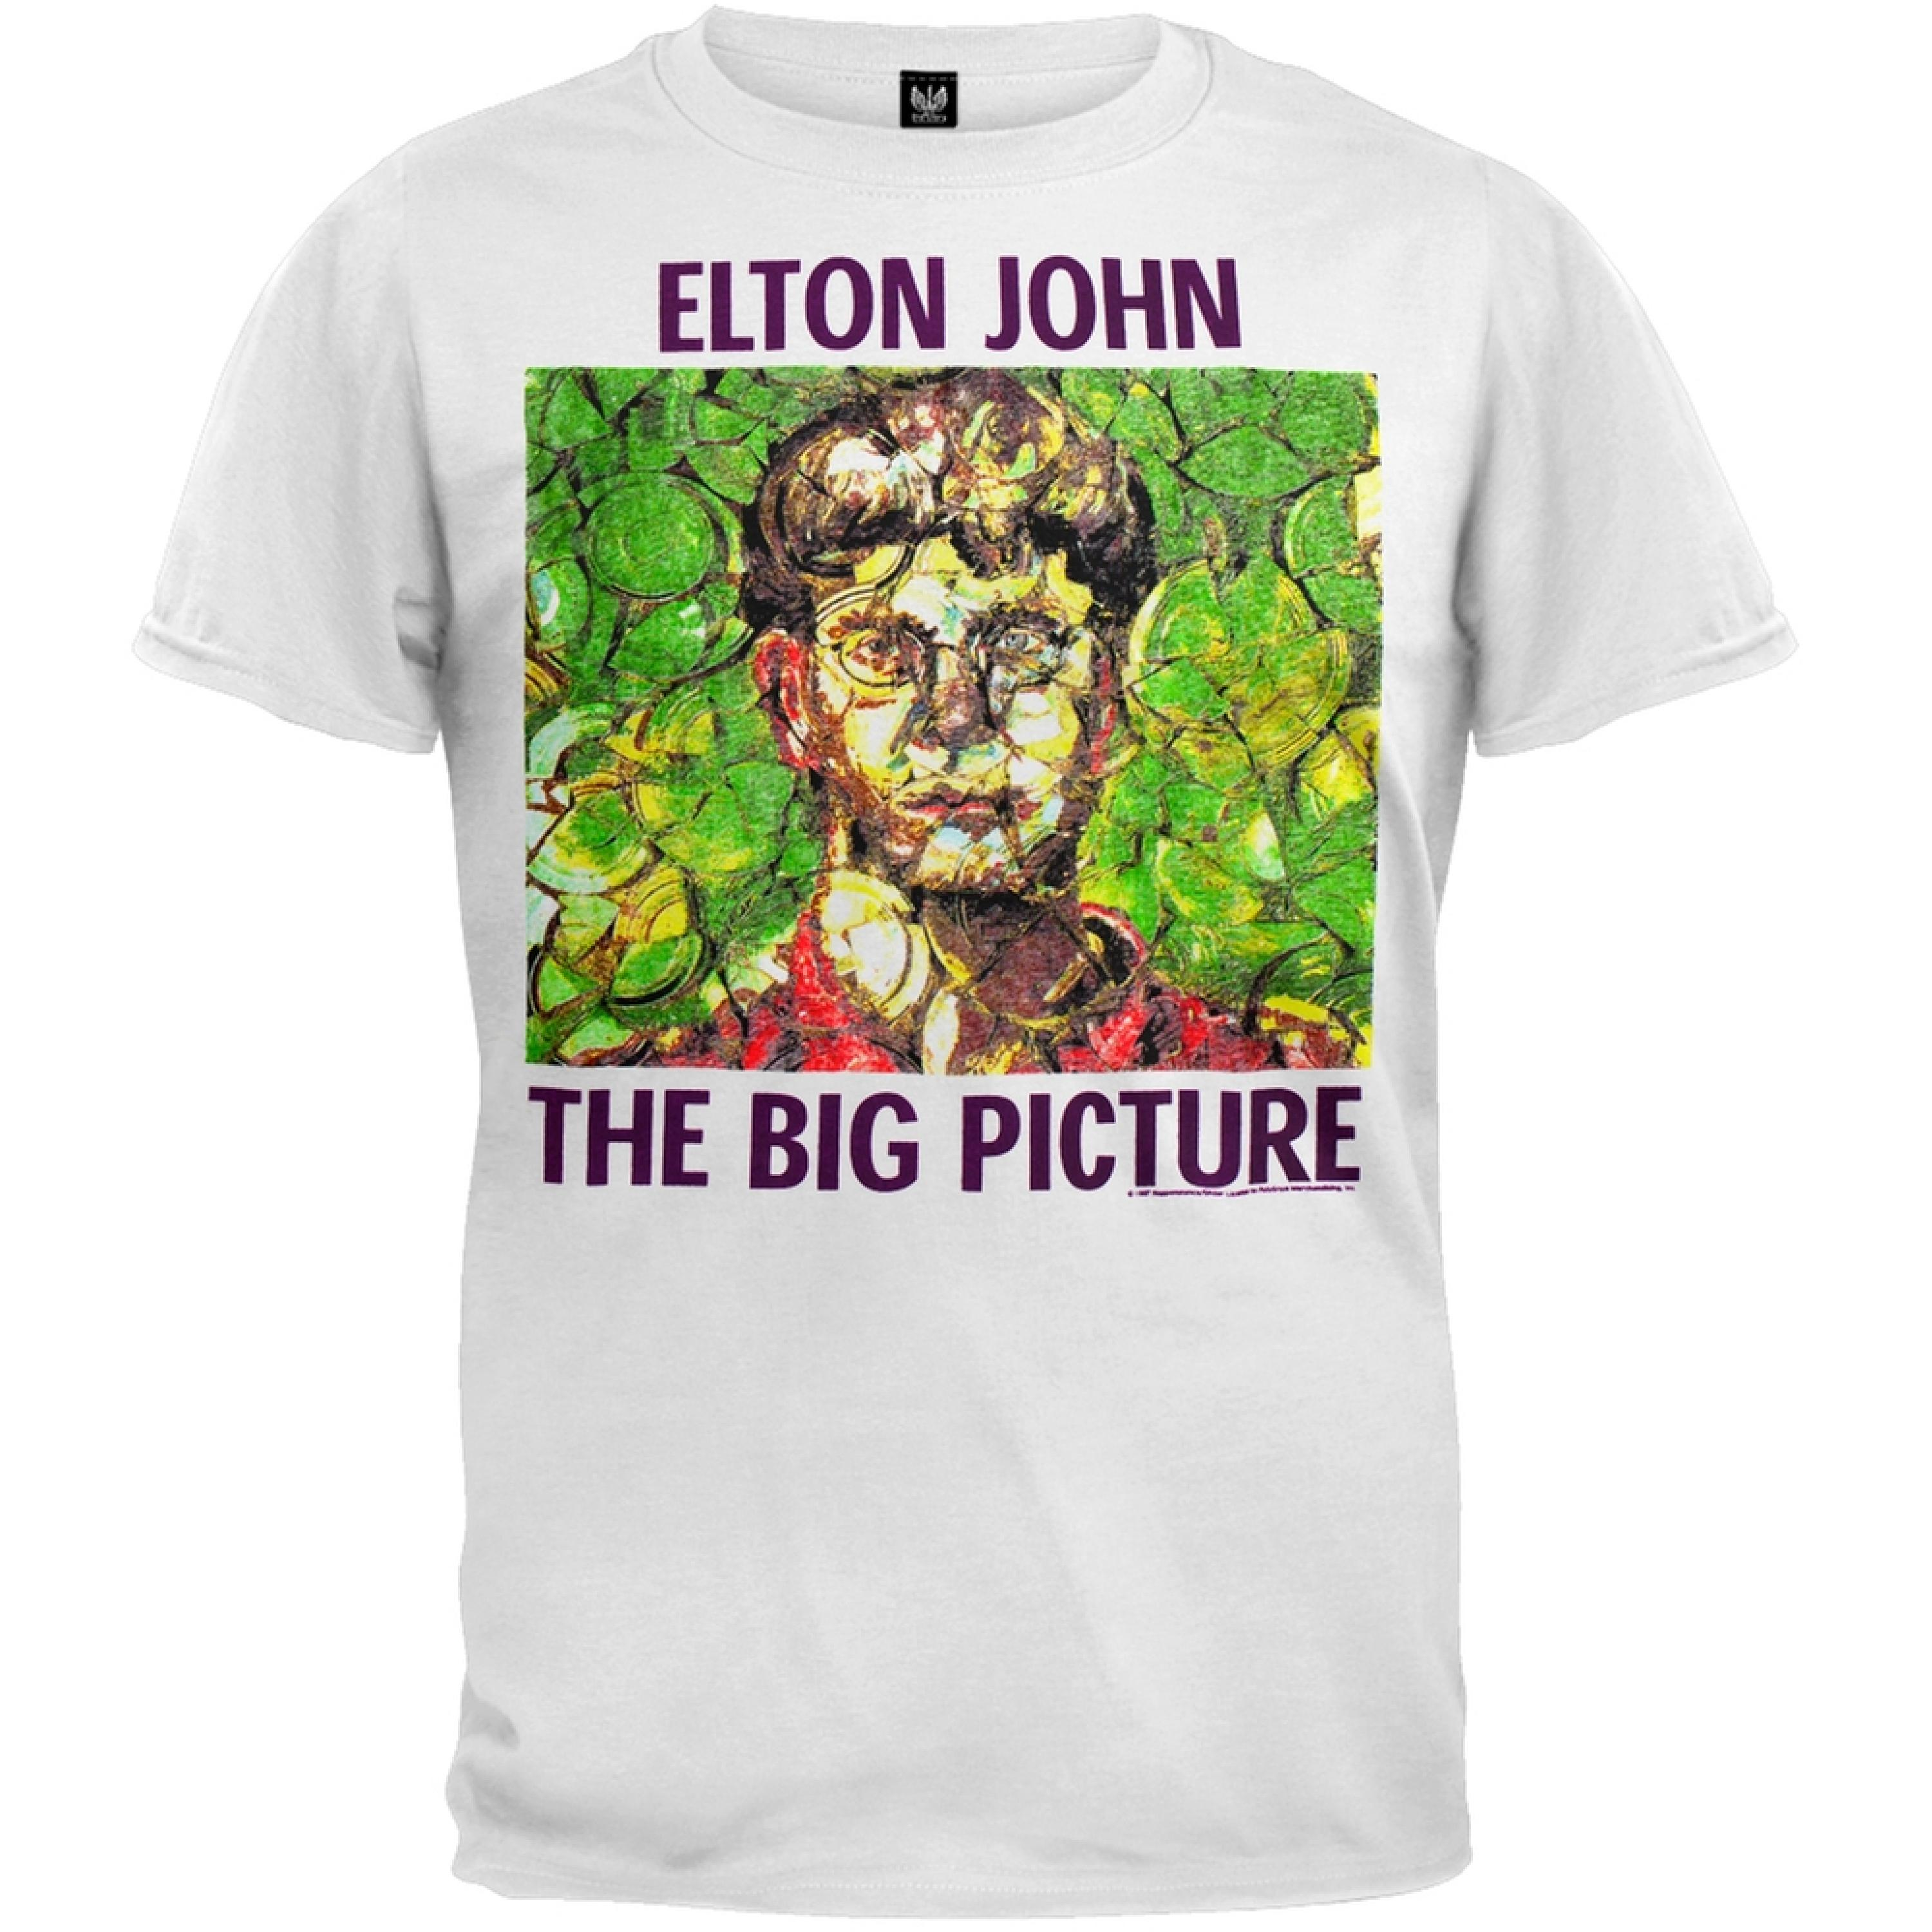 Elton John - Big Picture T-Shirt